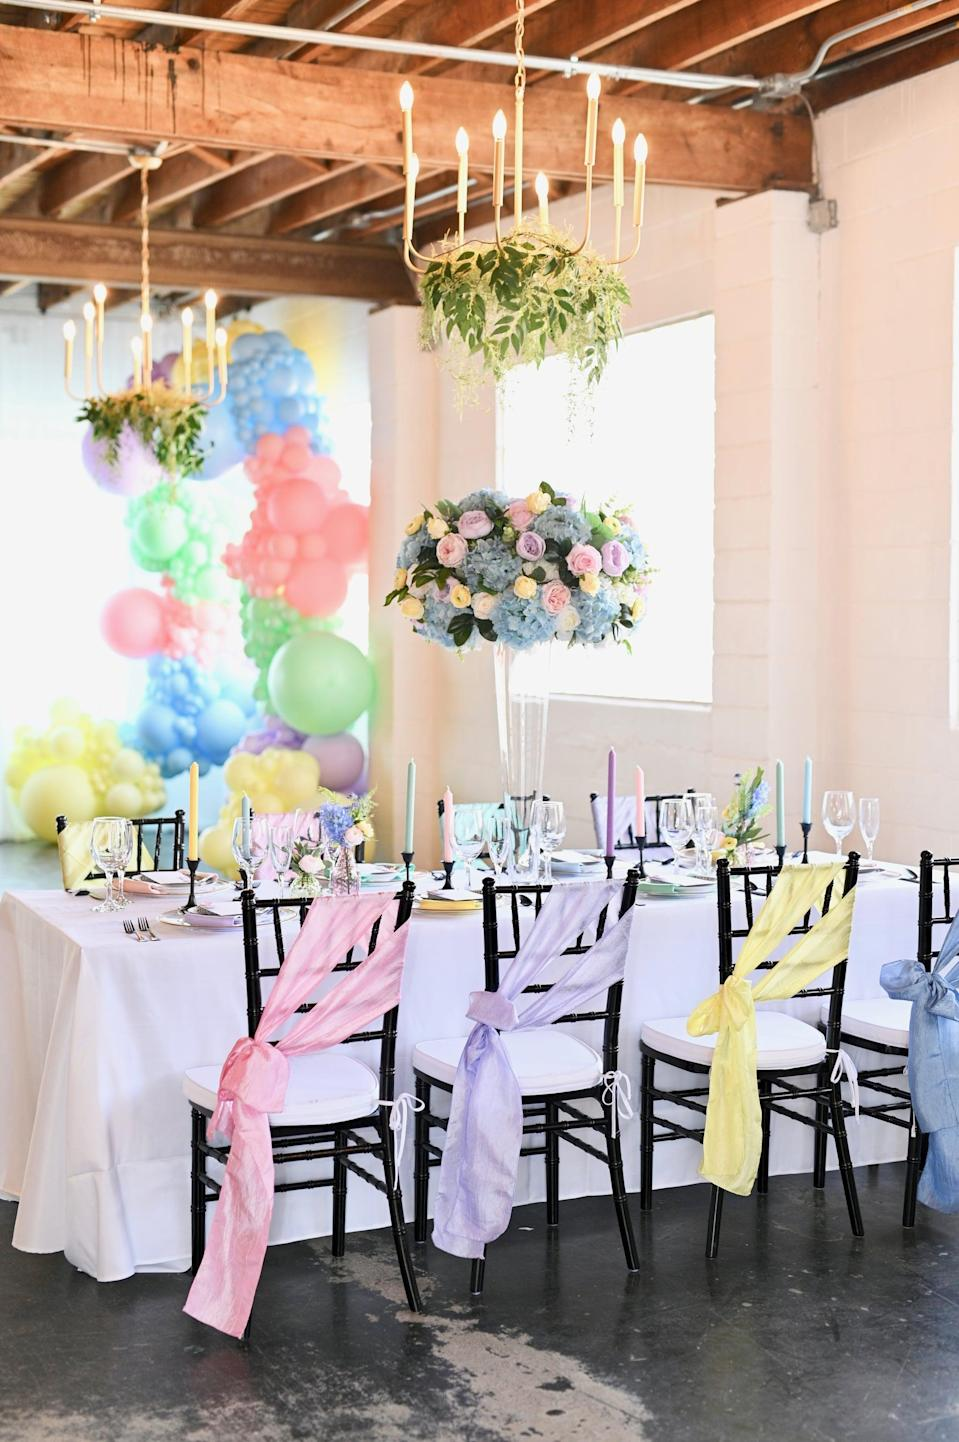 <p>If the future bride is all about bright colors, flower arrangements, and fun-filled photo ops, she would love a rainbow-themed bridal party. You'll just need balloons, flowers, and bright accessories (like the chair sashes pictured here) to make this theme shine bright.</p>